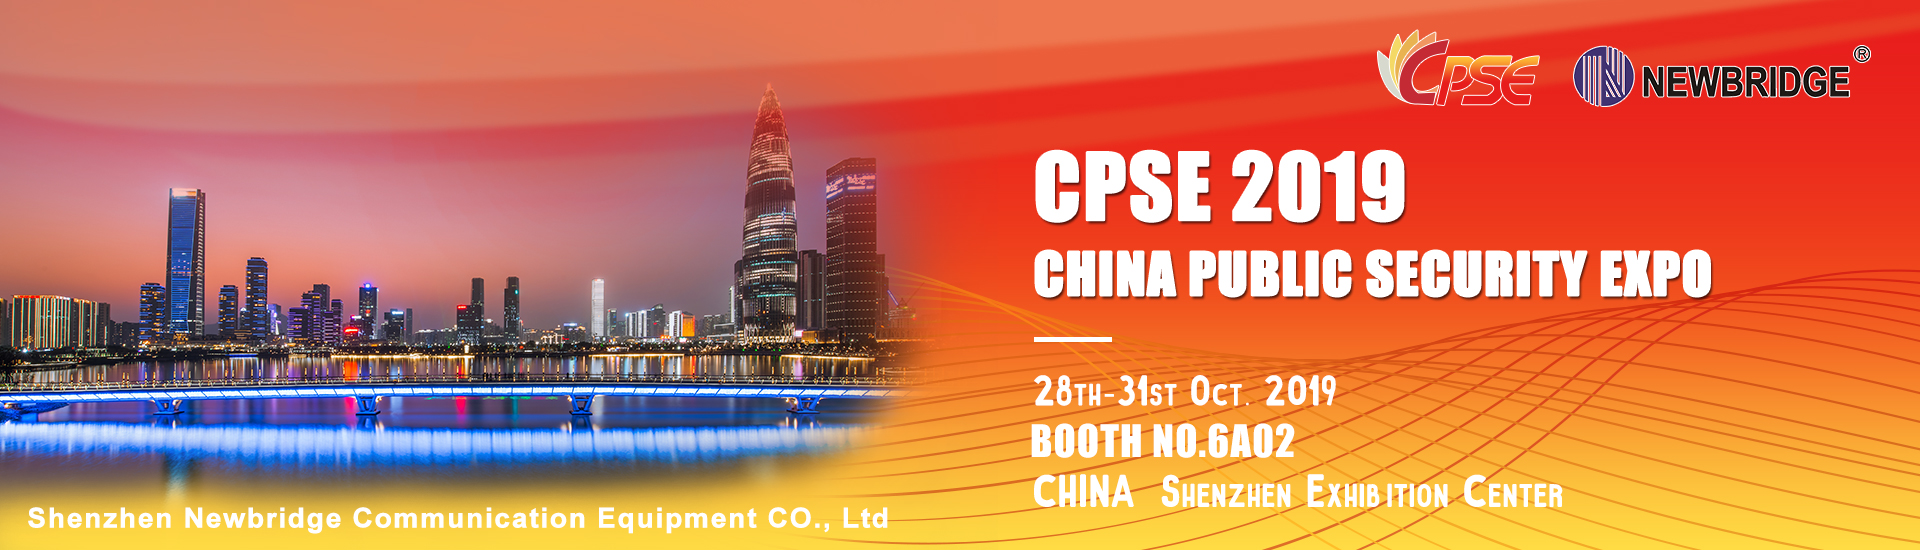 We will attend the CPSE(CHINA PUBLIC SECURITY EXPO)on 28t